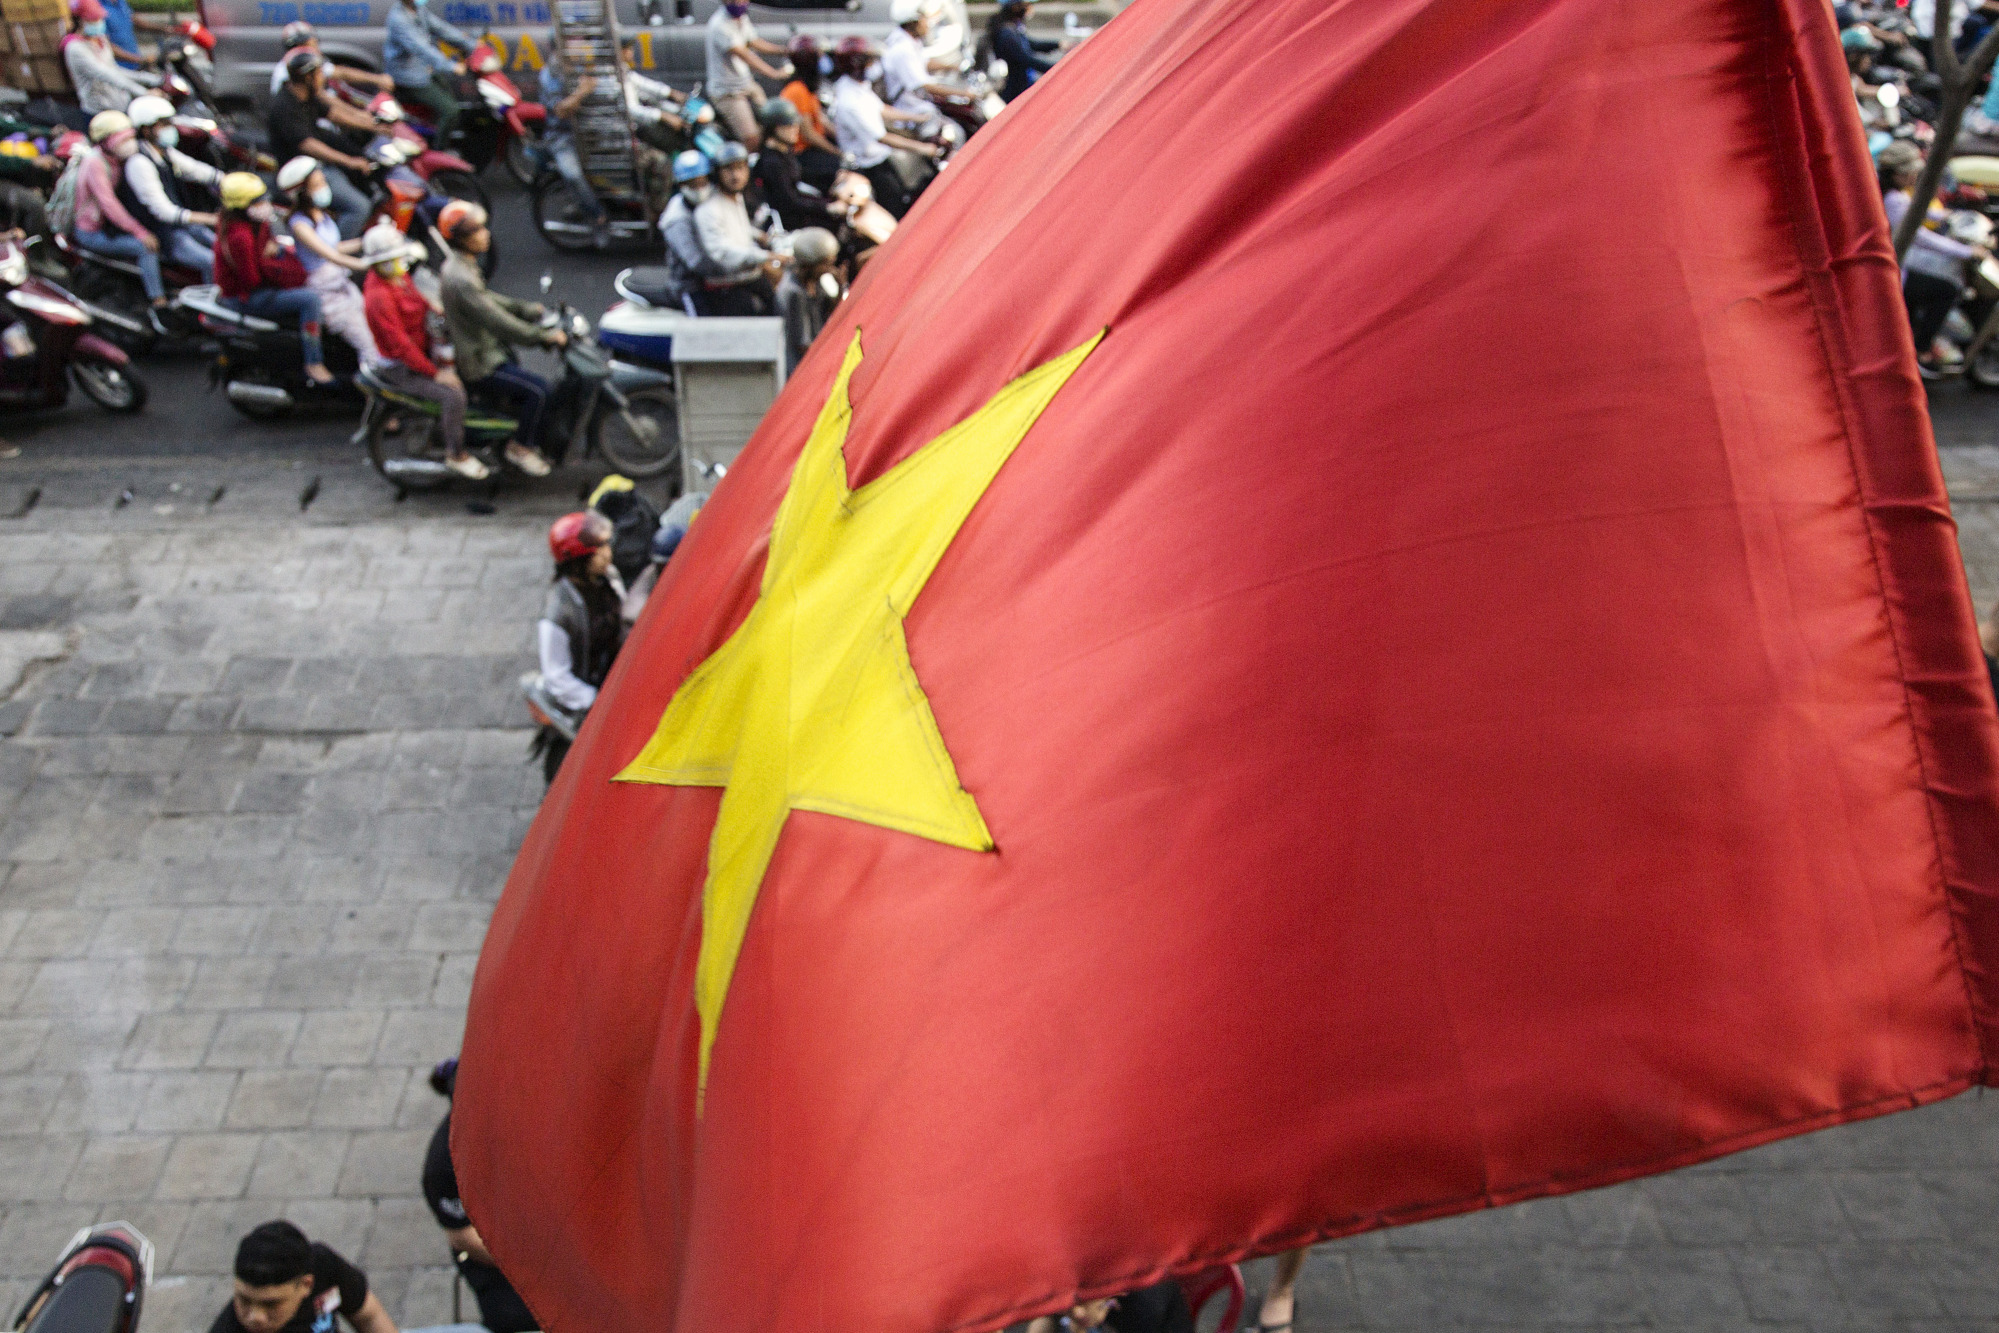 A Vietnamese national flag flies as motorcyclists wait at a traffic signal in Ho Chi Minh City, Vietnam, on Friday, Jan. 12, 2018.